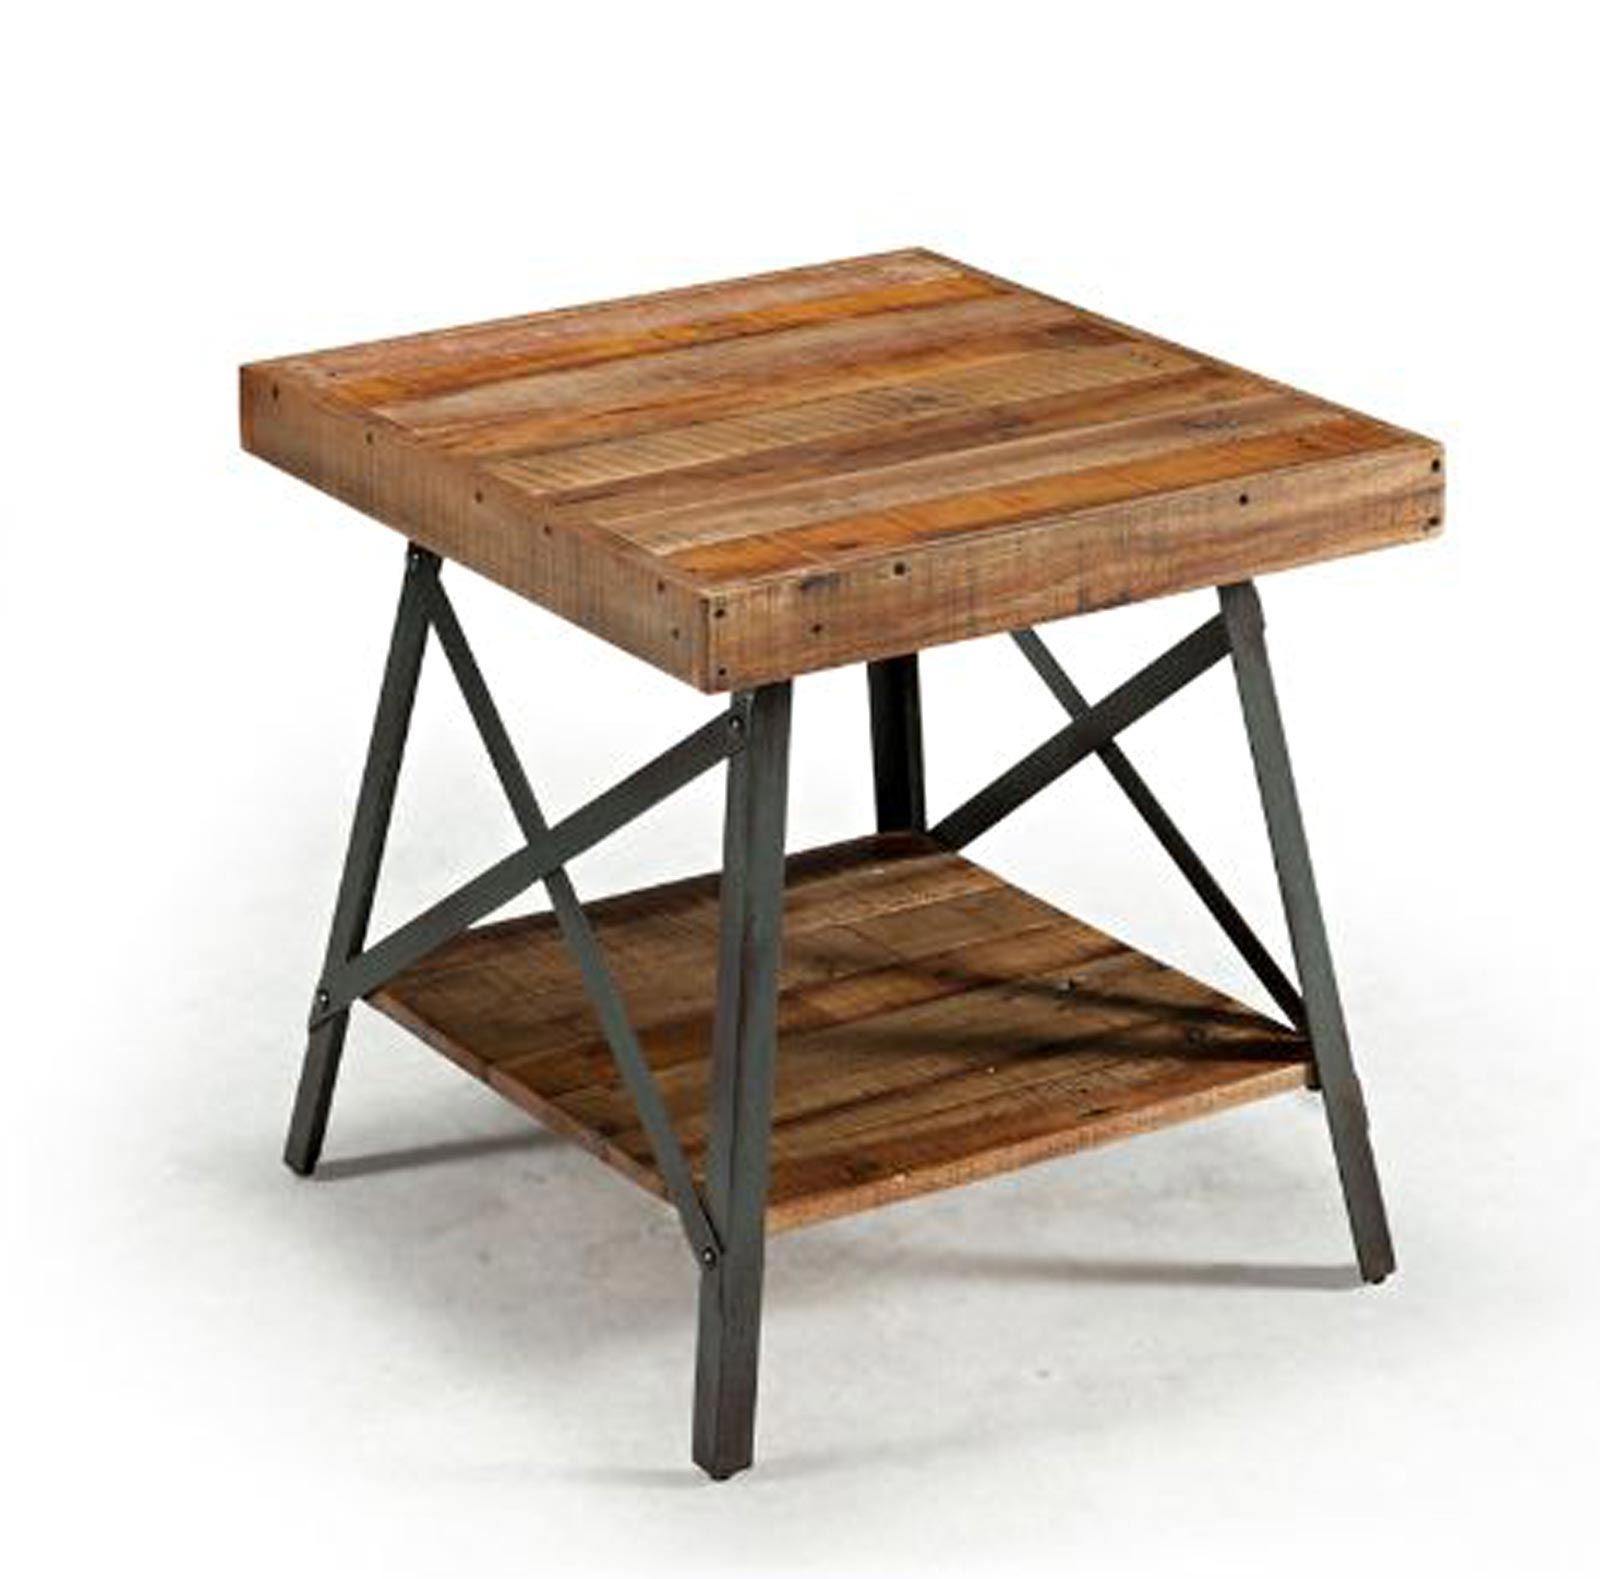 teenage bedroom furniture for small rooms the terrific awesome metal and wood end tables home design ideas tures rustic side table wooden reclaimed diy industrial iron accent